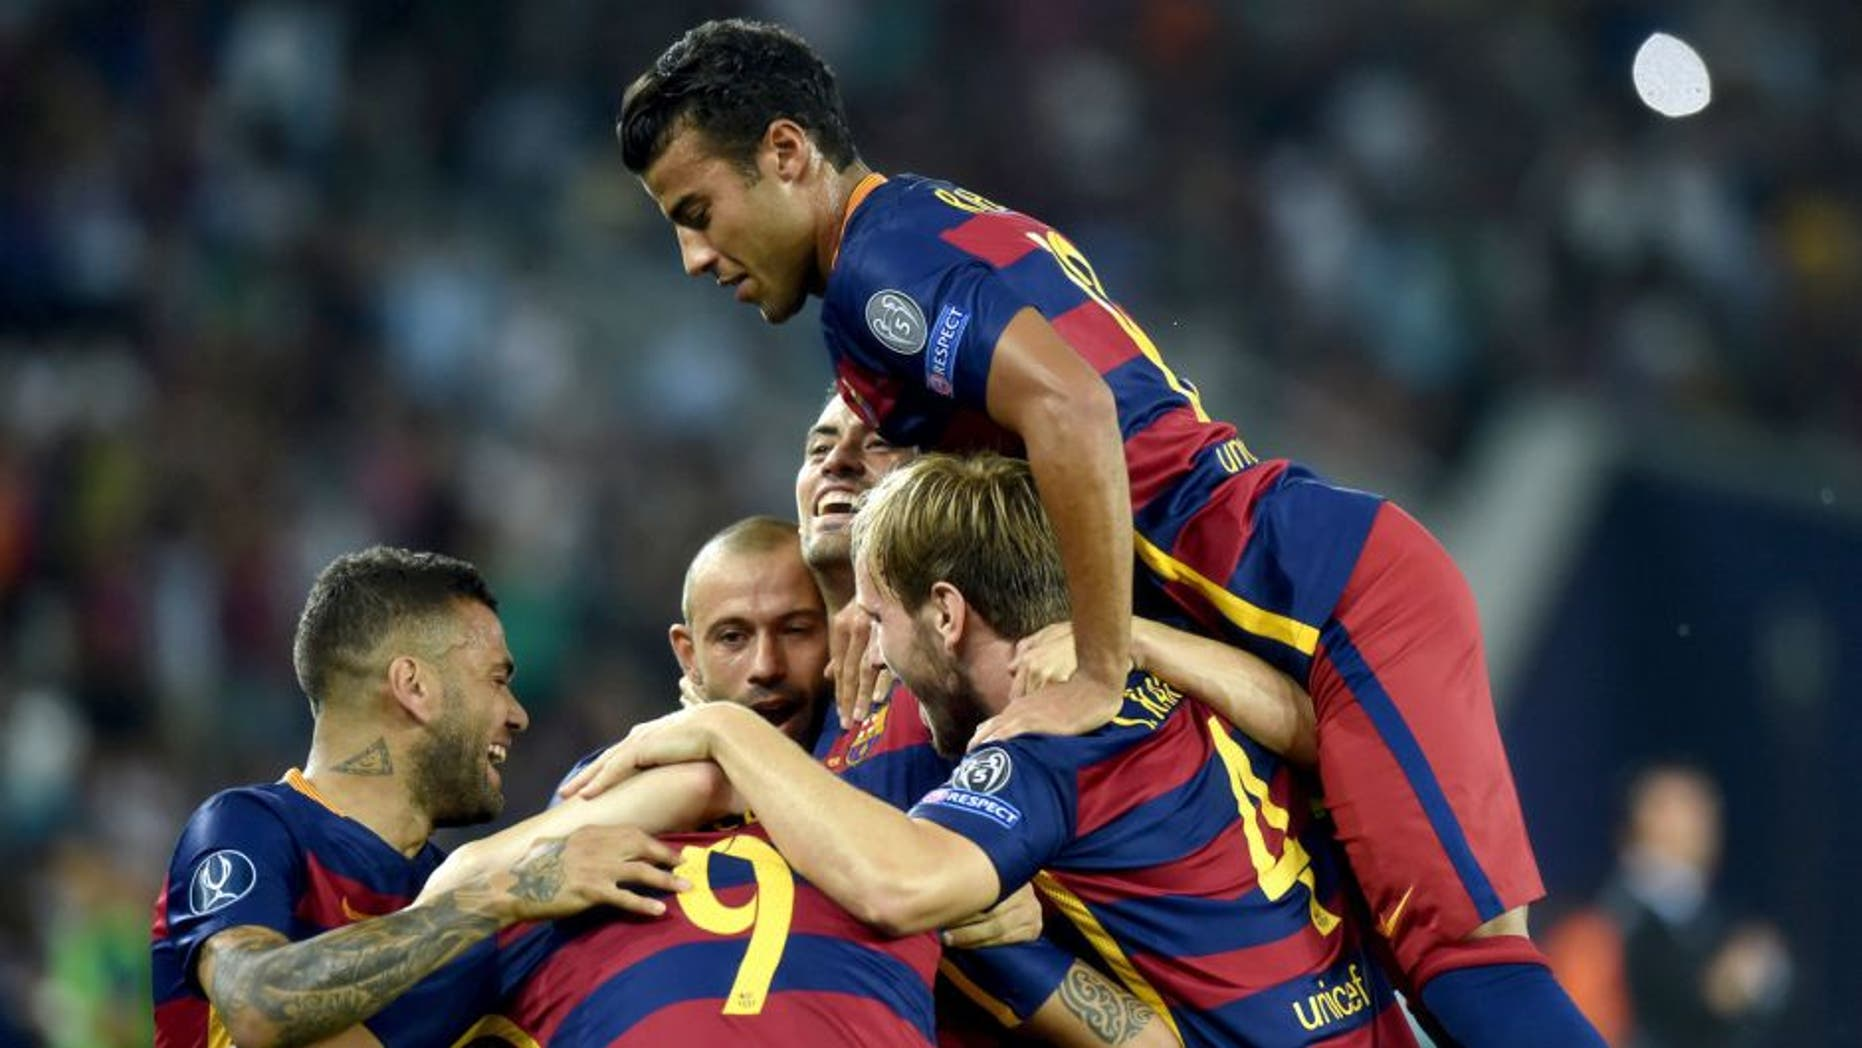 Barcelona's players celebrate after scoring a goal during the UEFA Super Cup final football match between FC Barcelona and Sevilla FC in Tbilisi on August 11, 2015. AFP PHOTO/KIRILL KUDRYAVTSEV (Photo credit should read KIRILL KUDRYAVTSEV/AFP/Getty Images)